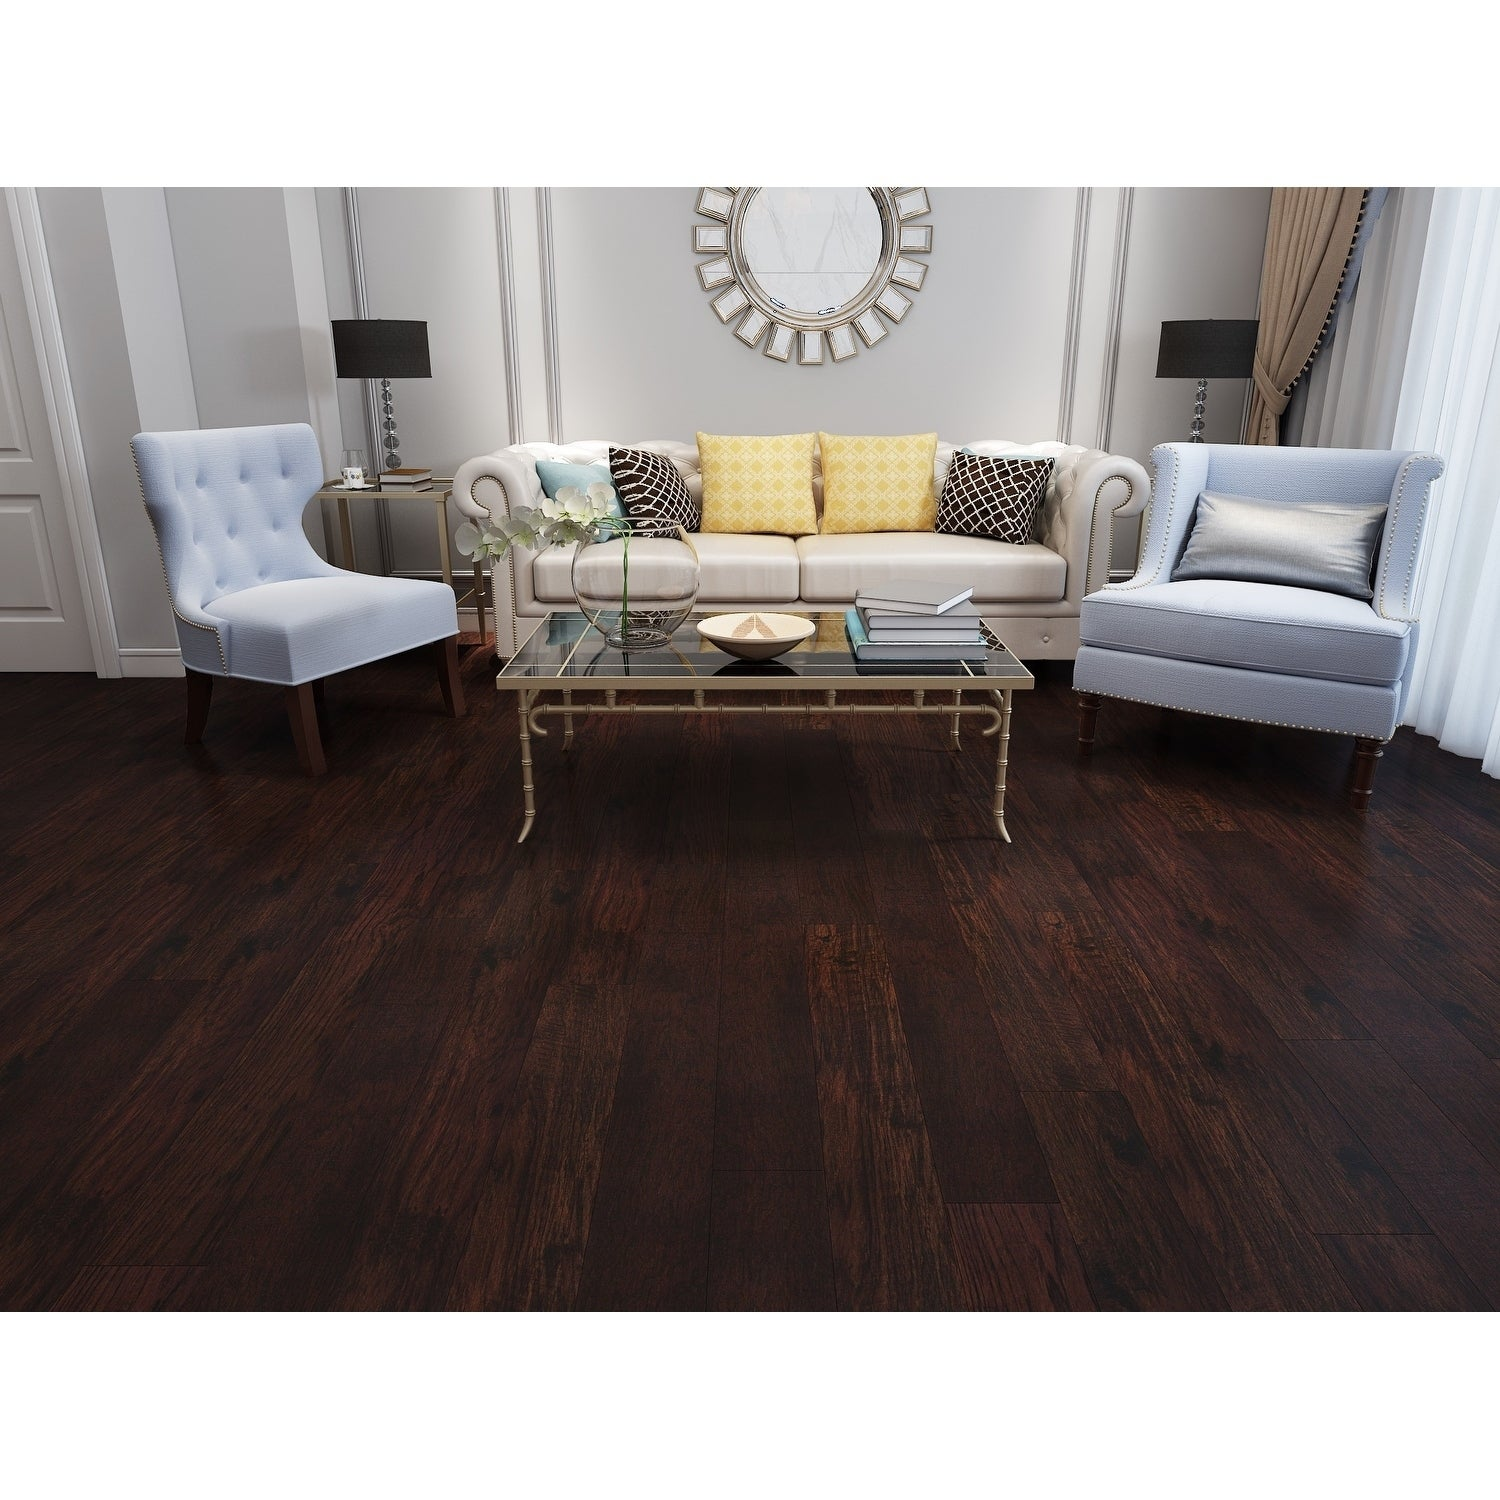 Dark Chocolate Engineered Hickory Wood Flooring 20 02 Sq Ft Carton